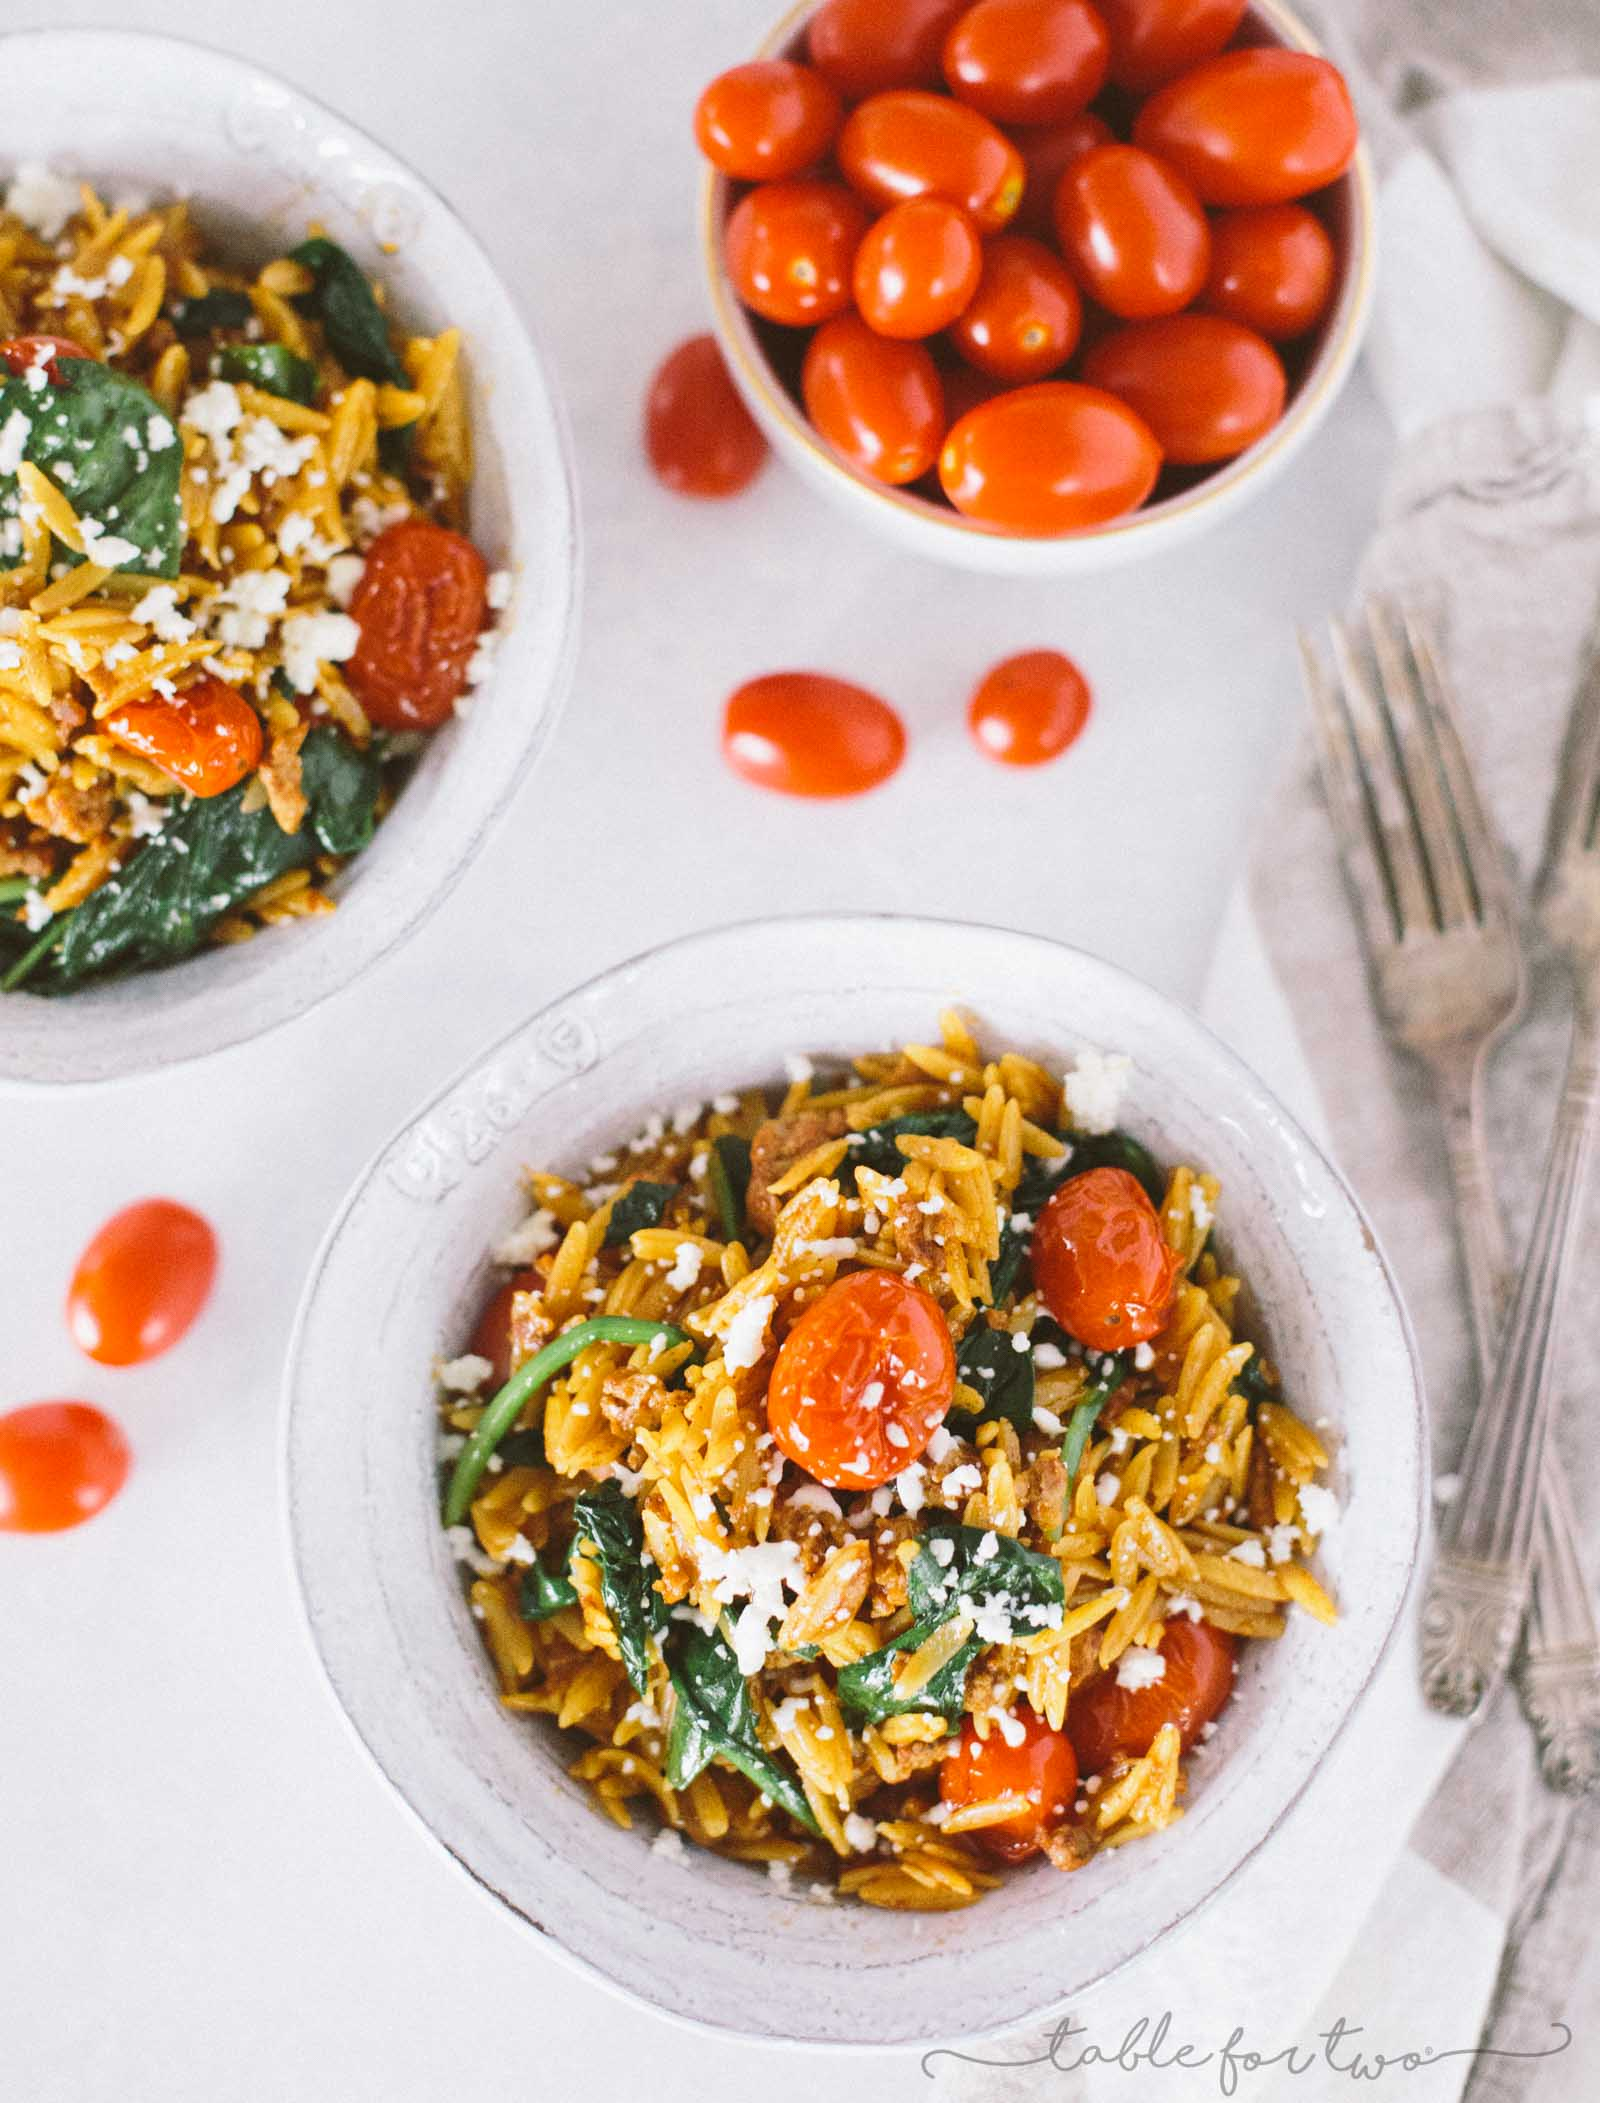 Cheesy chorizo orzo with blistered tomatoes and spinach is a quick and easy dinner with simple ingredients! Small ingredient list, LARGE flavor! You will love the flavors of this and how little effort it takes to come together!